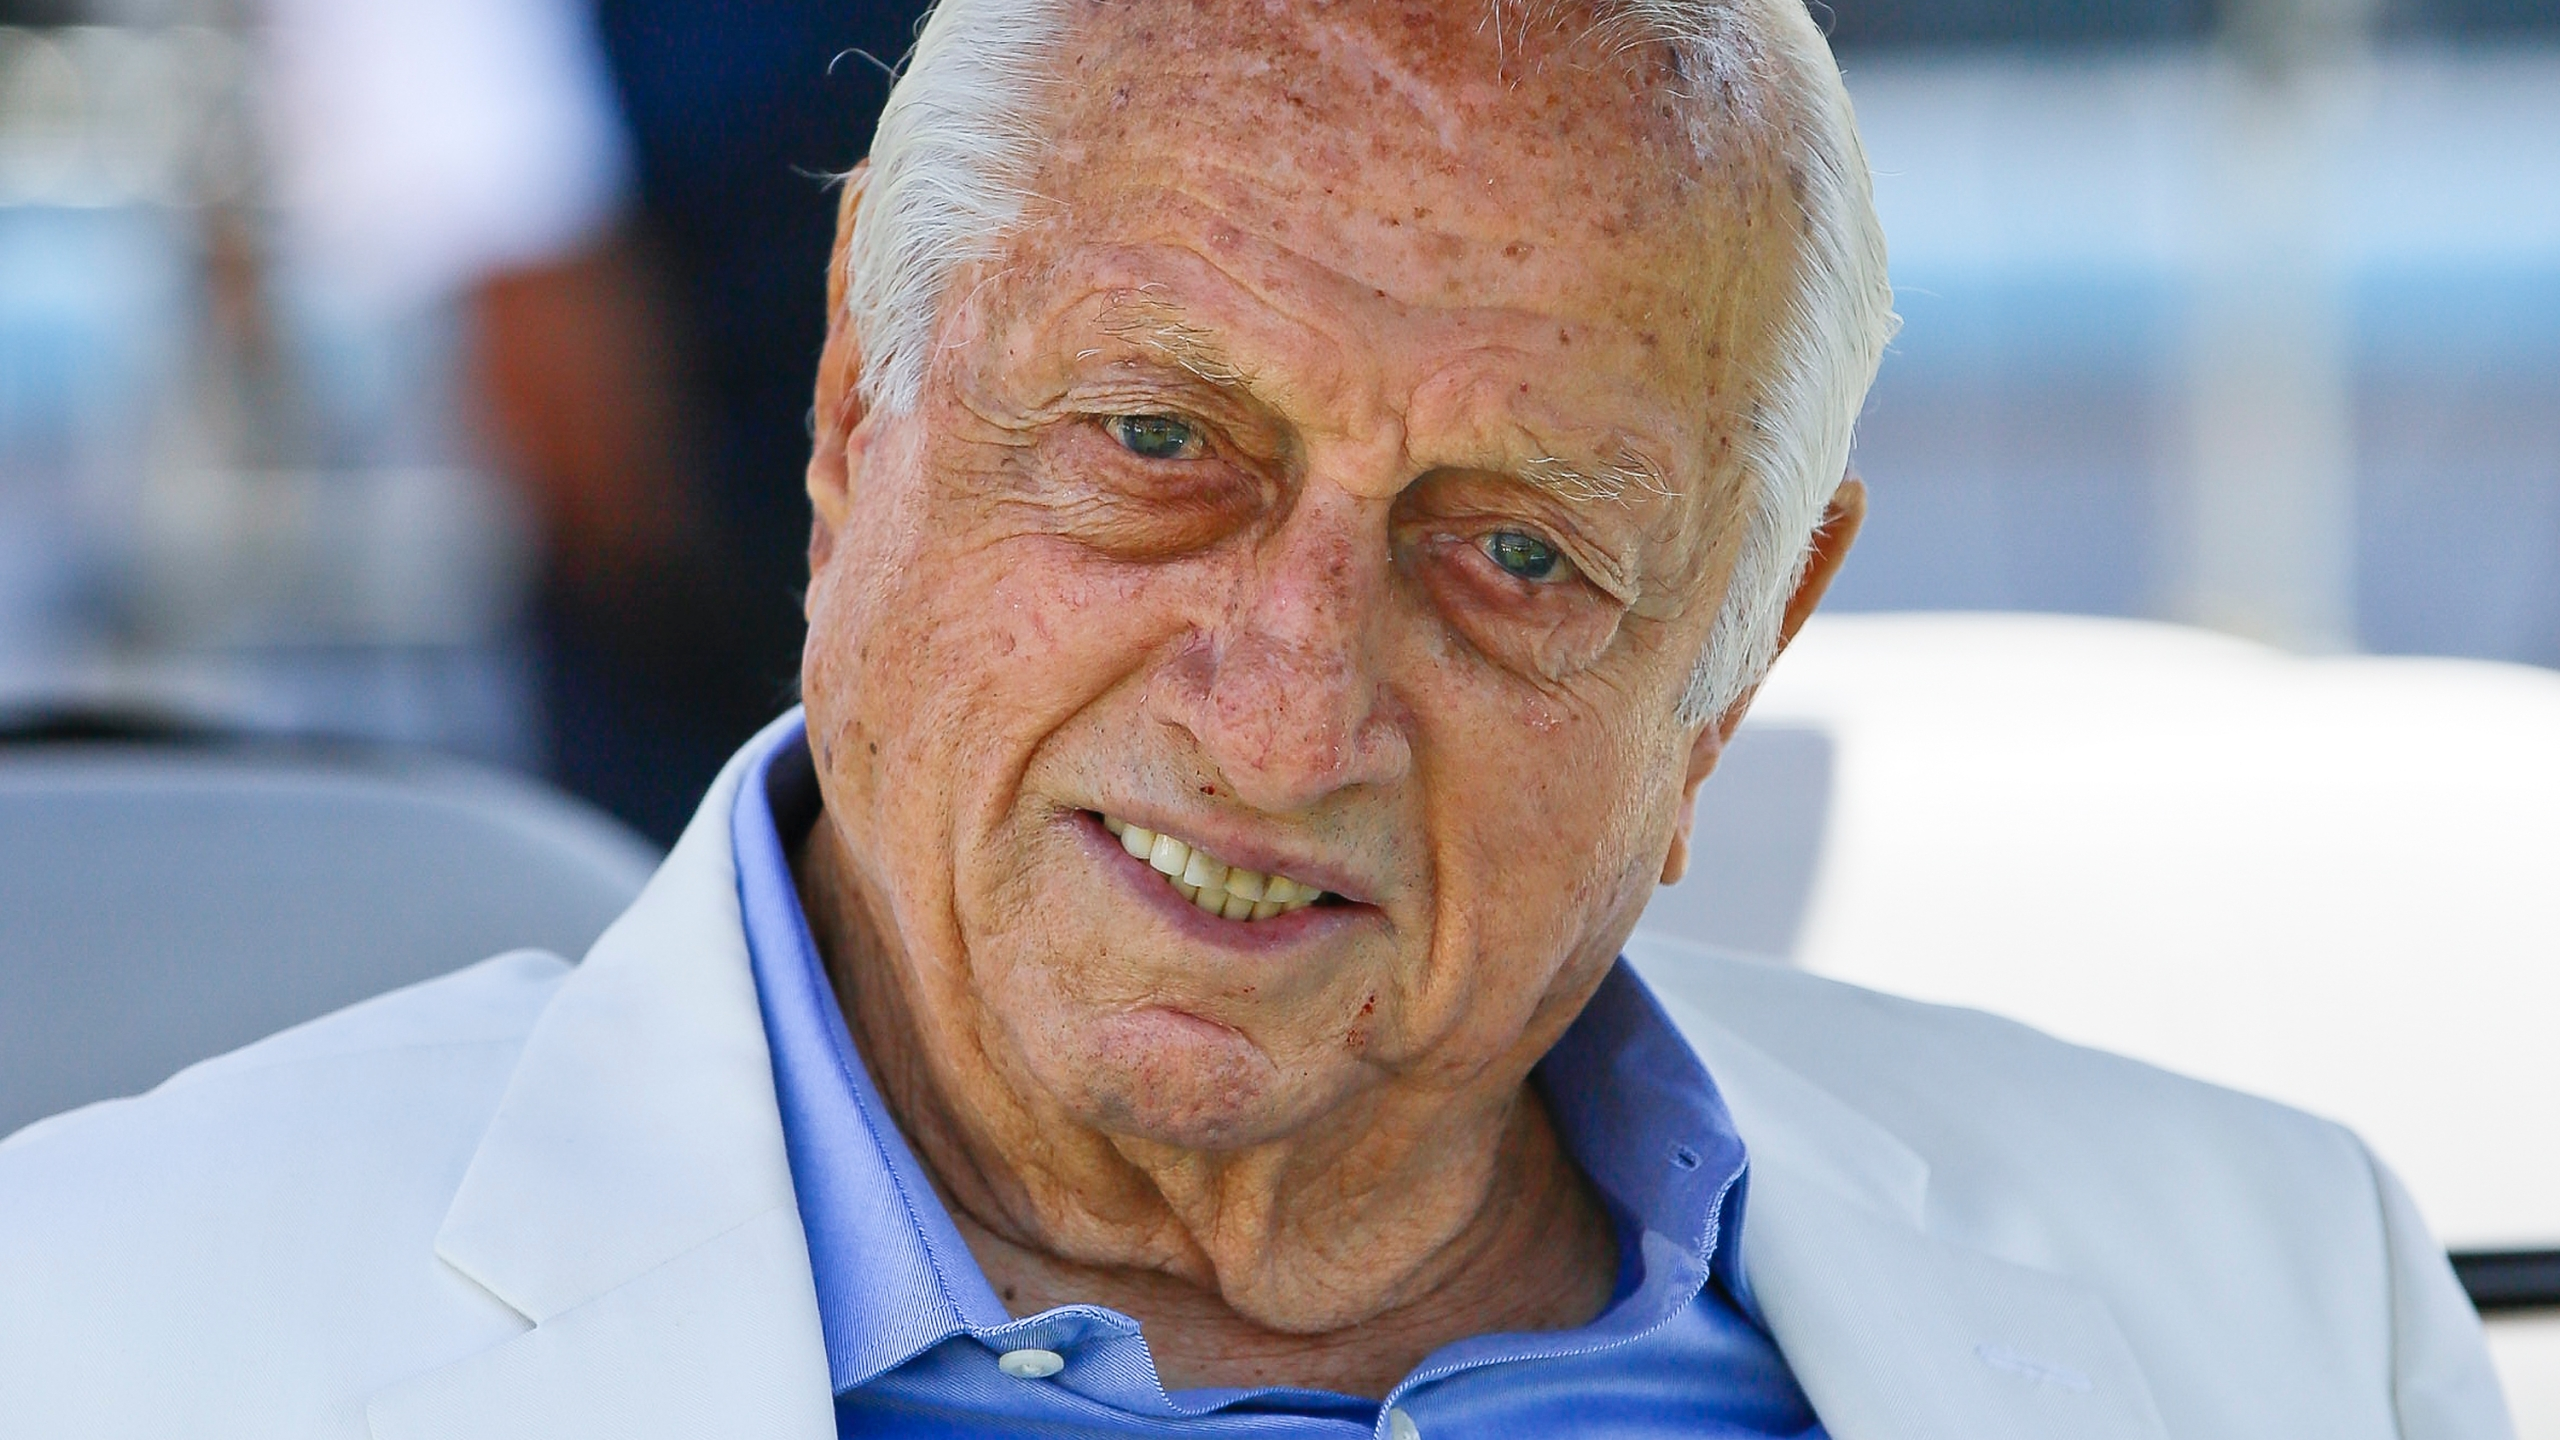 Los Angeles Dodgers former manager and Hall of Famer Tommy Lasorda attends a news conference where Baseball Commissioner Rob Manfred announced that Dodger Stadium will host the All-Star Game in 2020, in Los Angeles, in this Wednesday, April 11, 2018, file photo. The Dodgers said Sunday, Nov. 15, 2020, that their 93-year-old former manager was in intensive care and resting comfortably at a hospital in Orange County, Calif. (AP Photo/Damian Dovarganes)